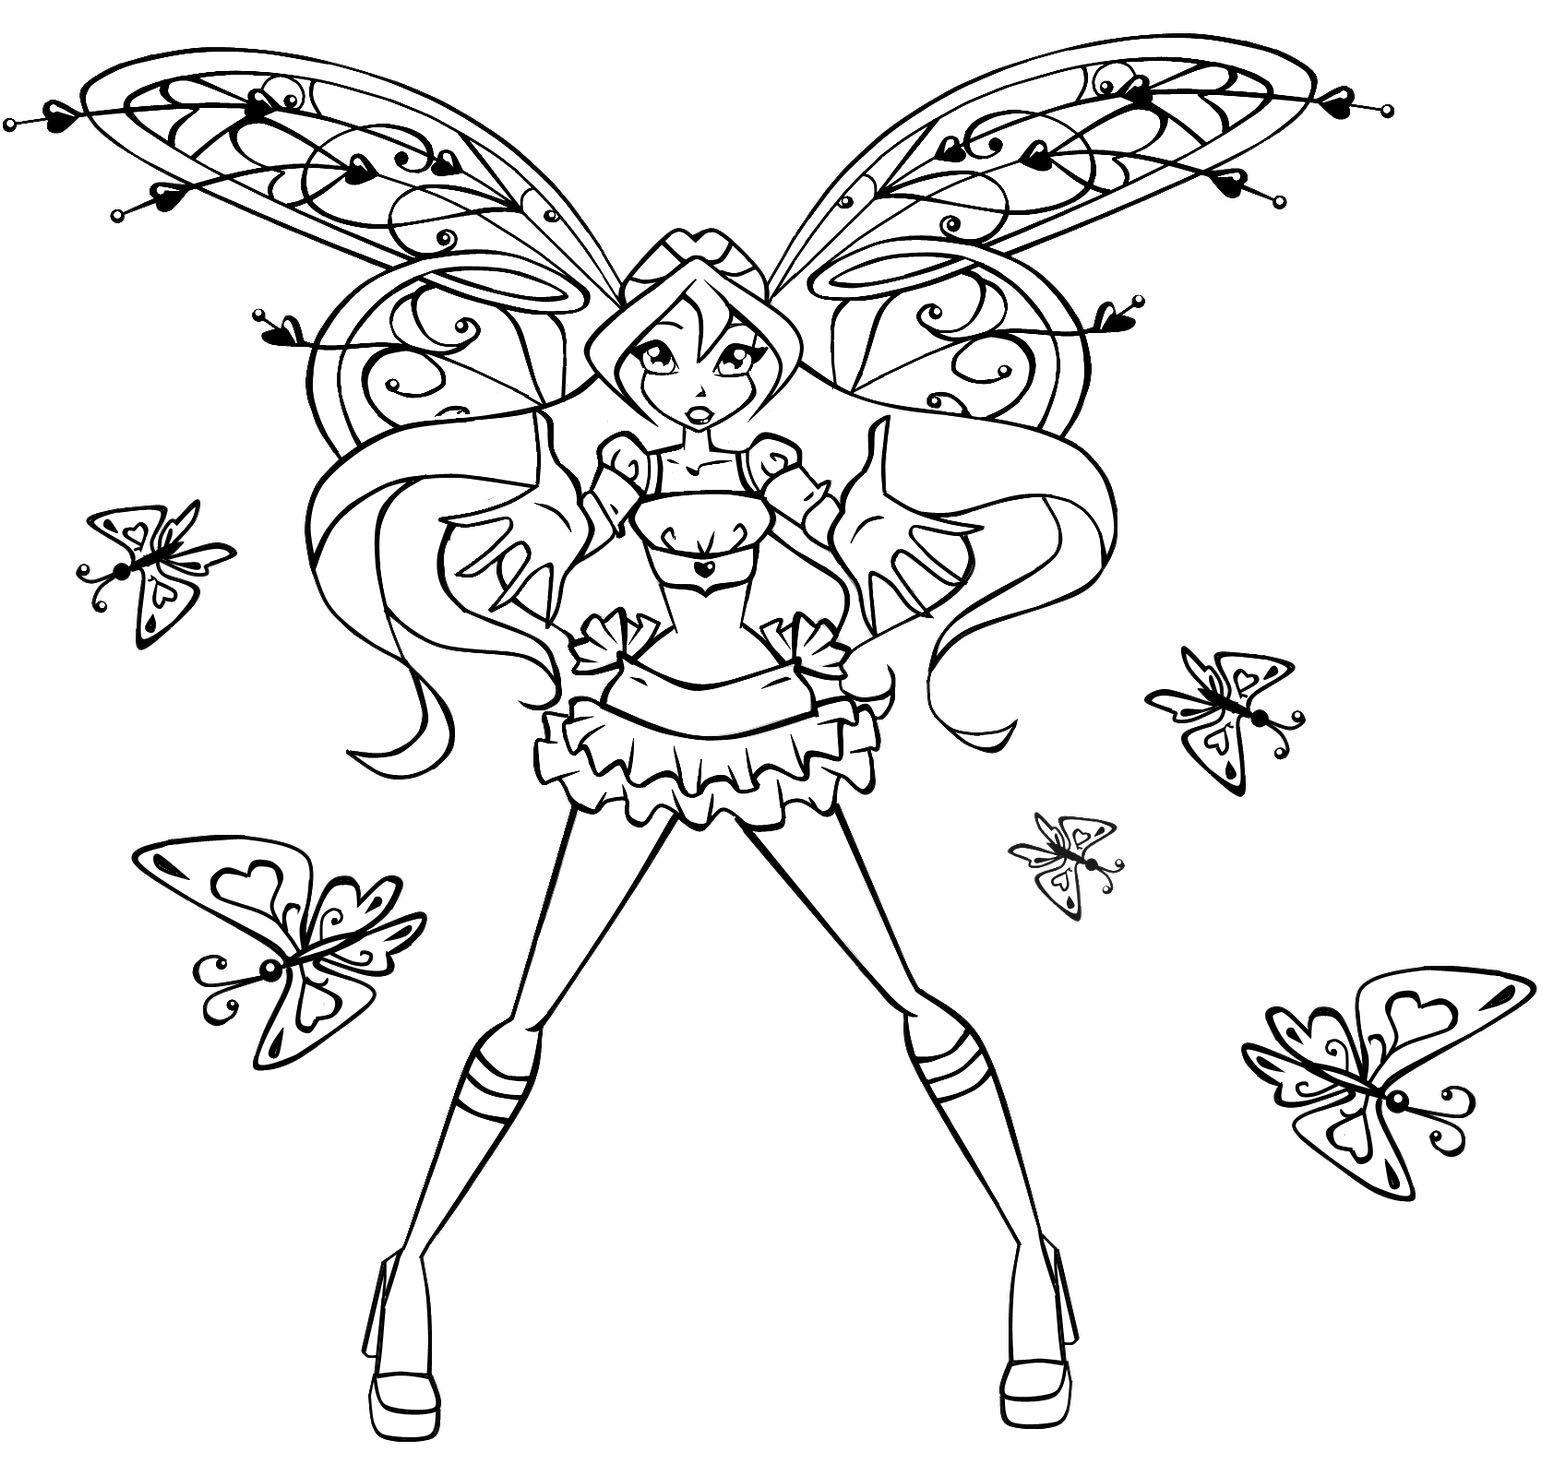 winx club coloring sheet winx club pinterest winx club and